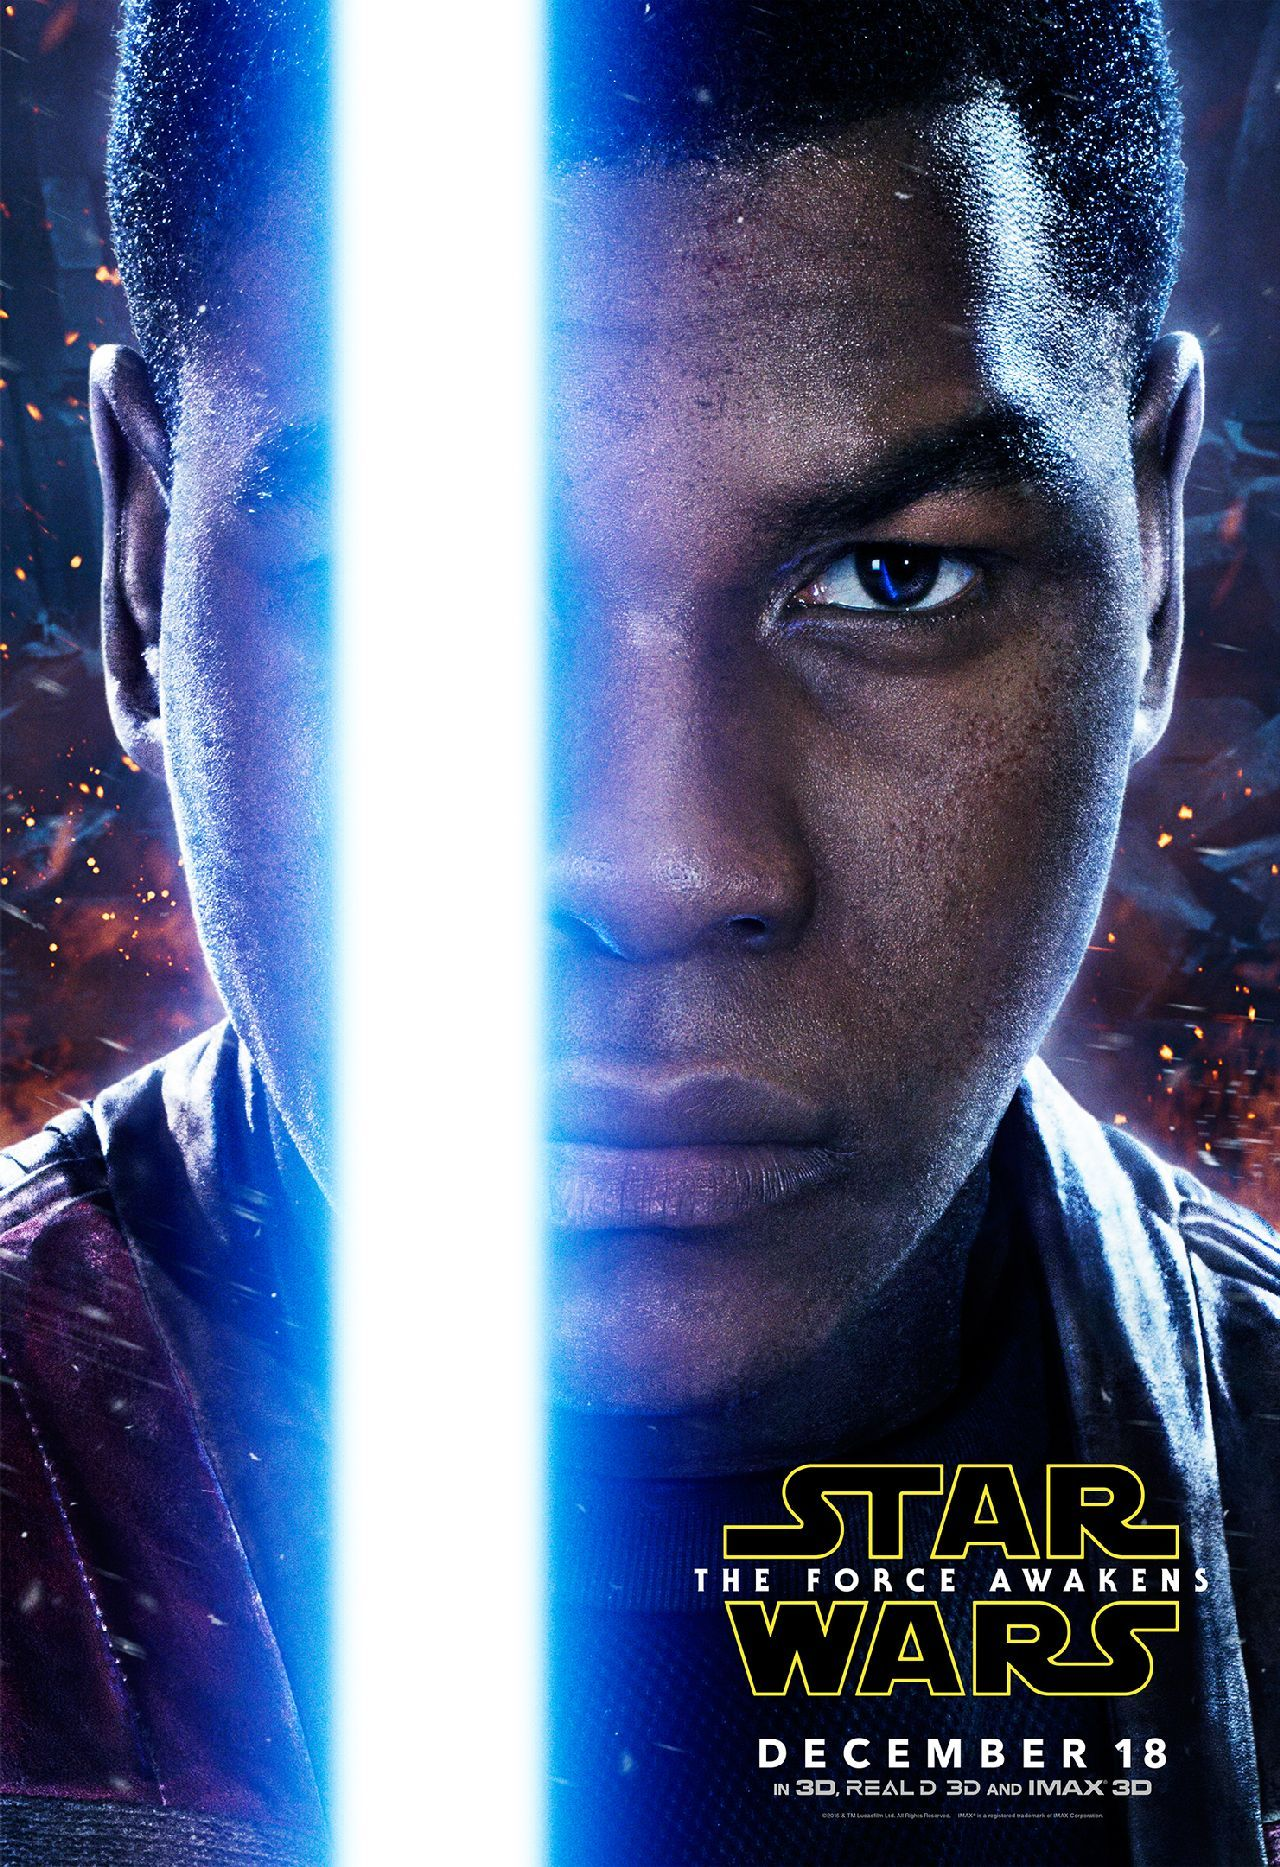 M.A.A.C. – Latest Trailer For STAR WARS: EPISODE 7 – THE FORCE AWAKENS. UPDATE: Character Posters